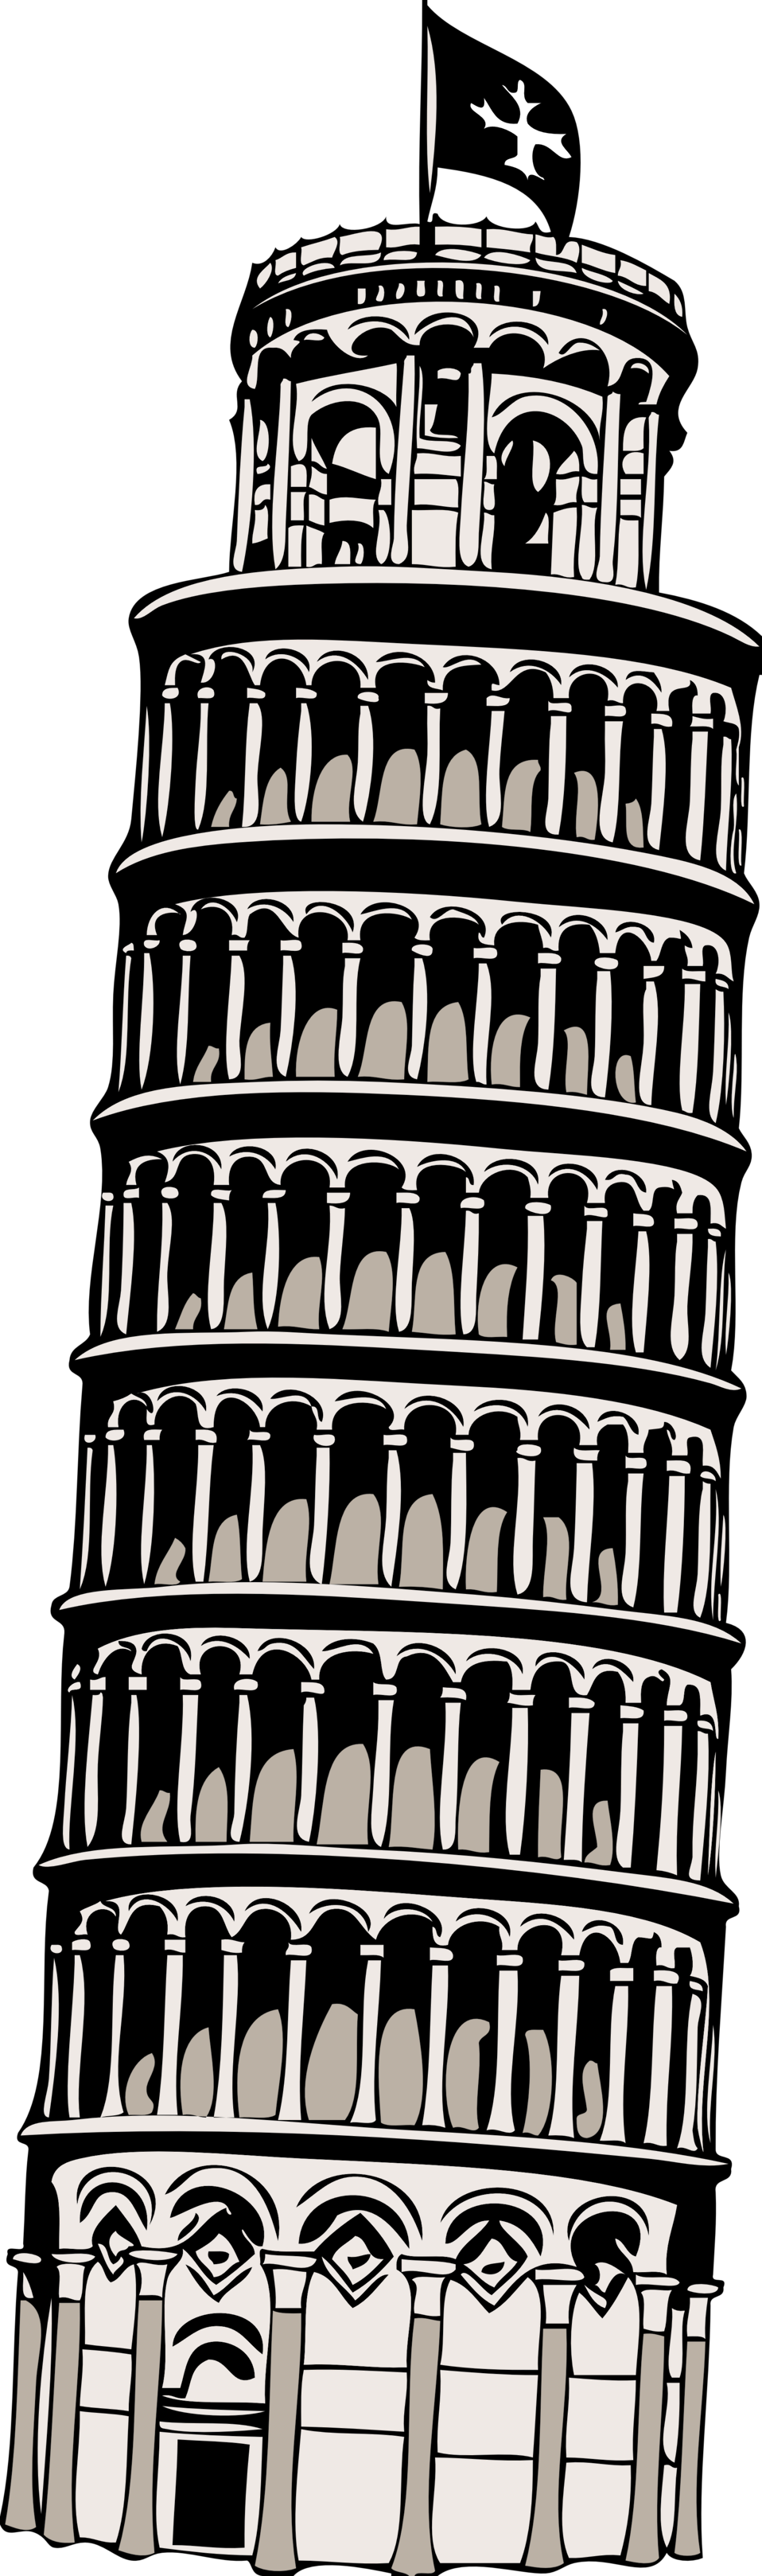 italy clipart tower